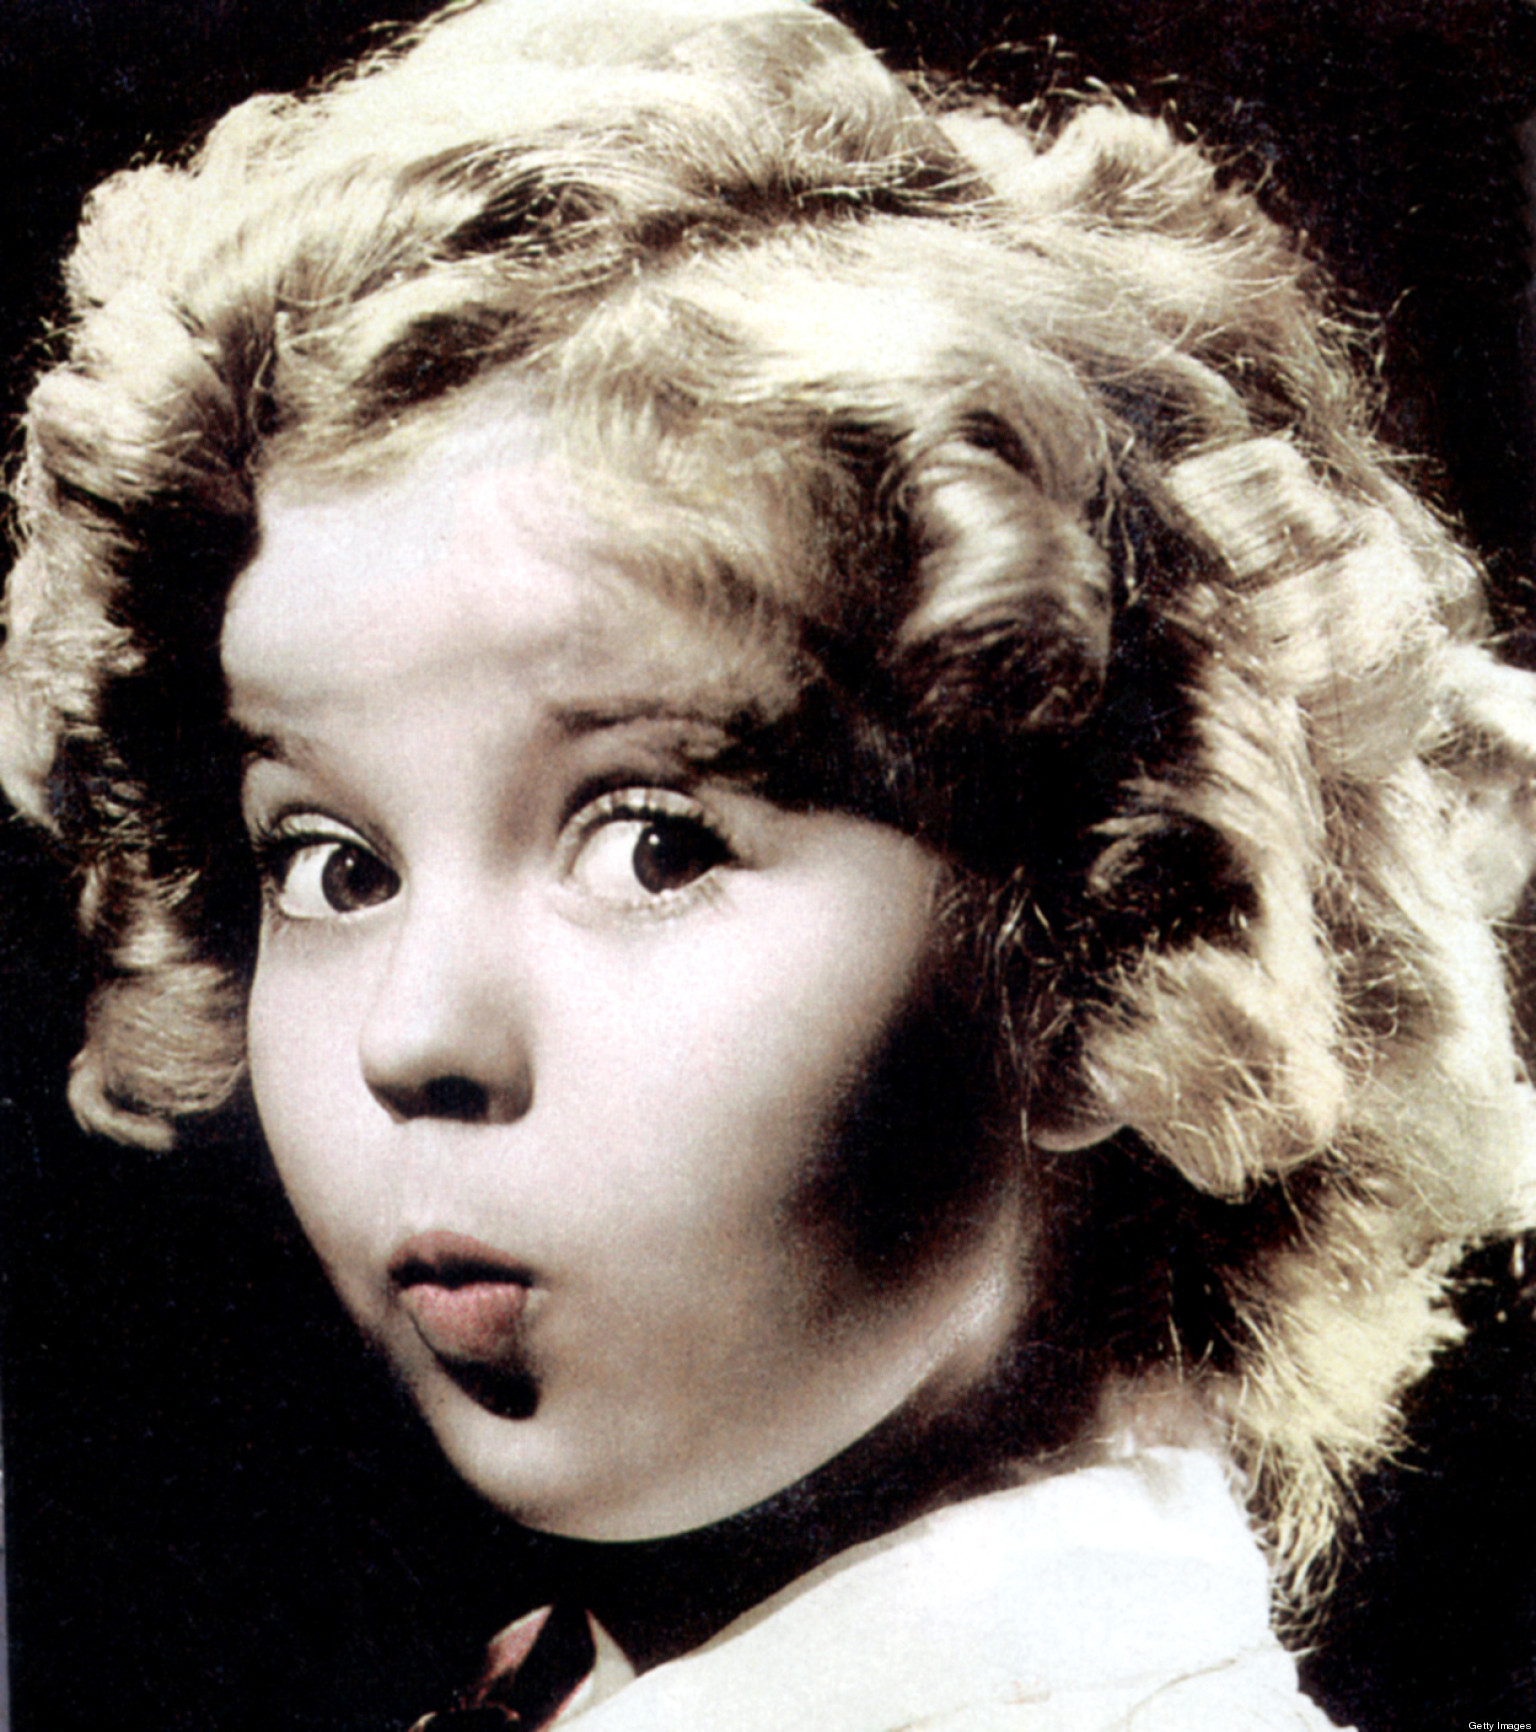 SHIRLEY-TEMPLE-BIRTHDAY-facebook.jpg